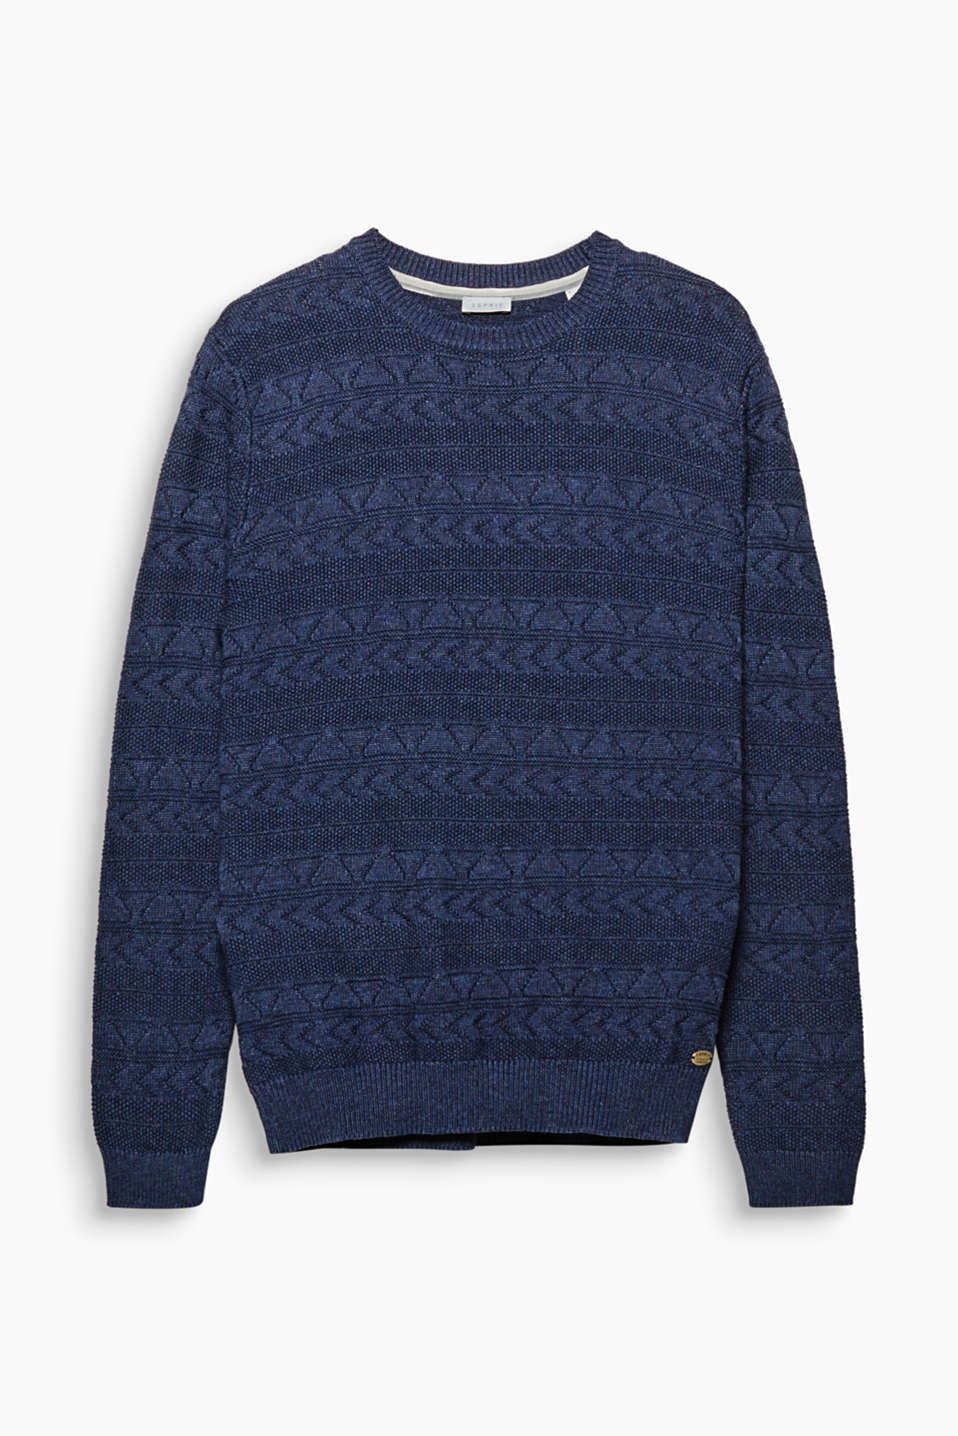 We love knitwear! The premium textured yarn composed of pure cotton makes this jumper something special.